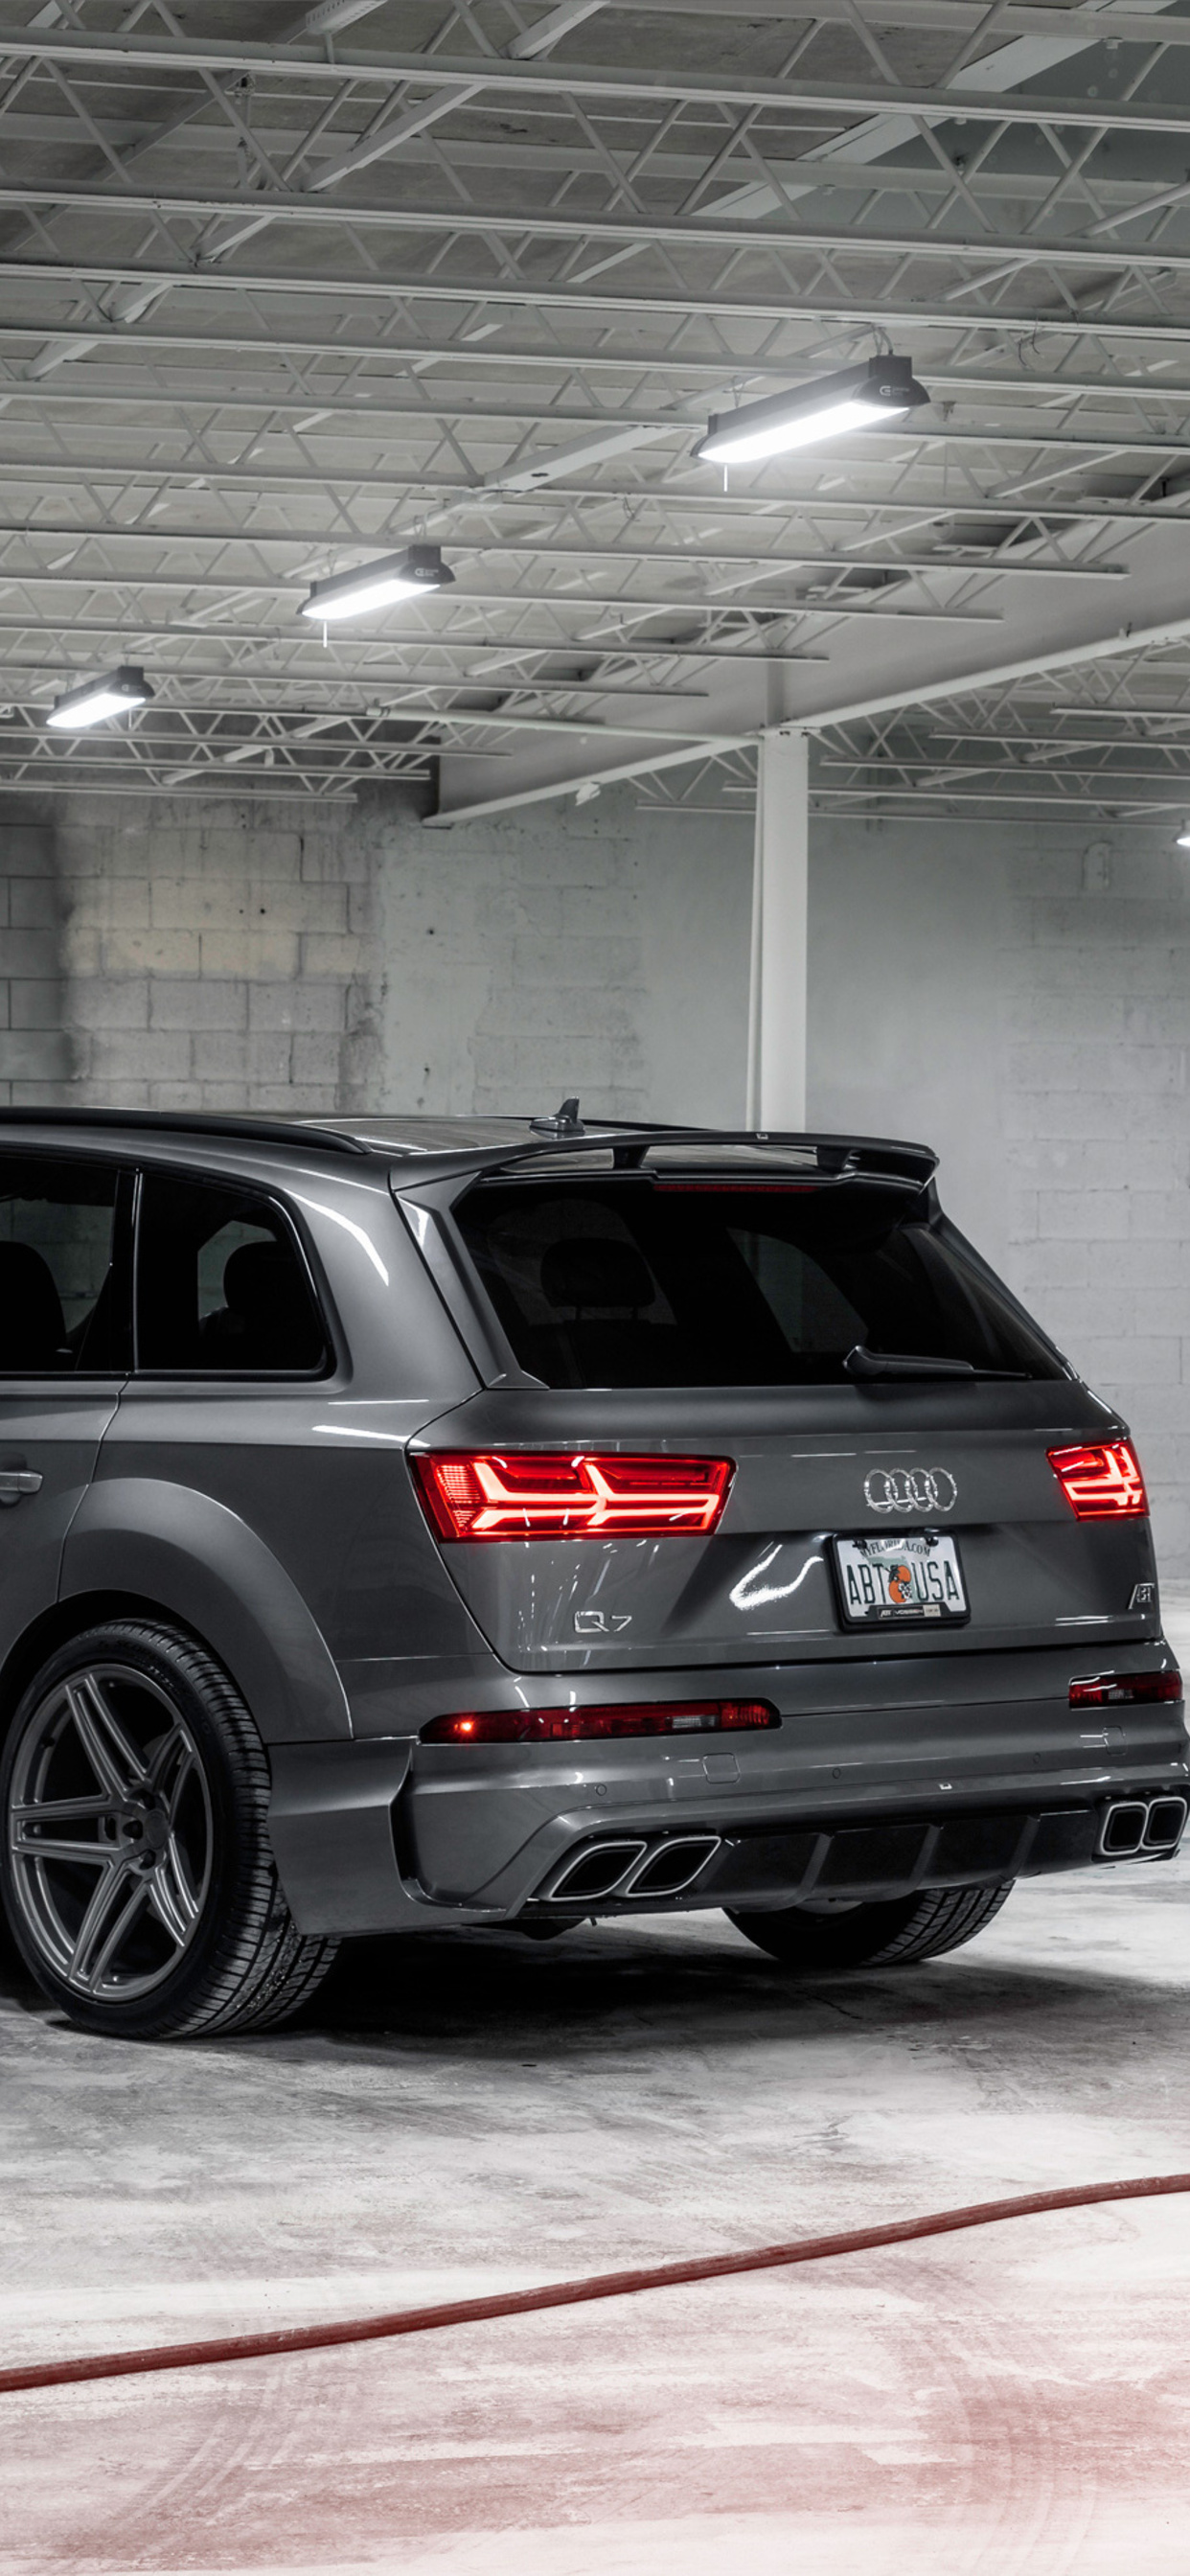 1242x2688 Audi Q7 Abt Vossen 2017 Iphone Xs Max Hd 4k Wallpapers